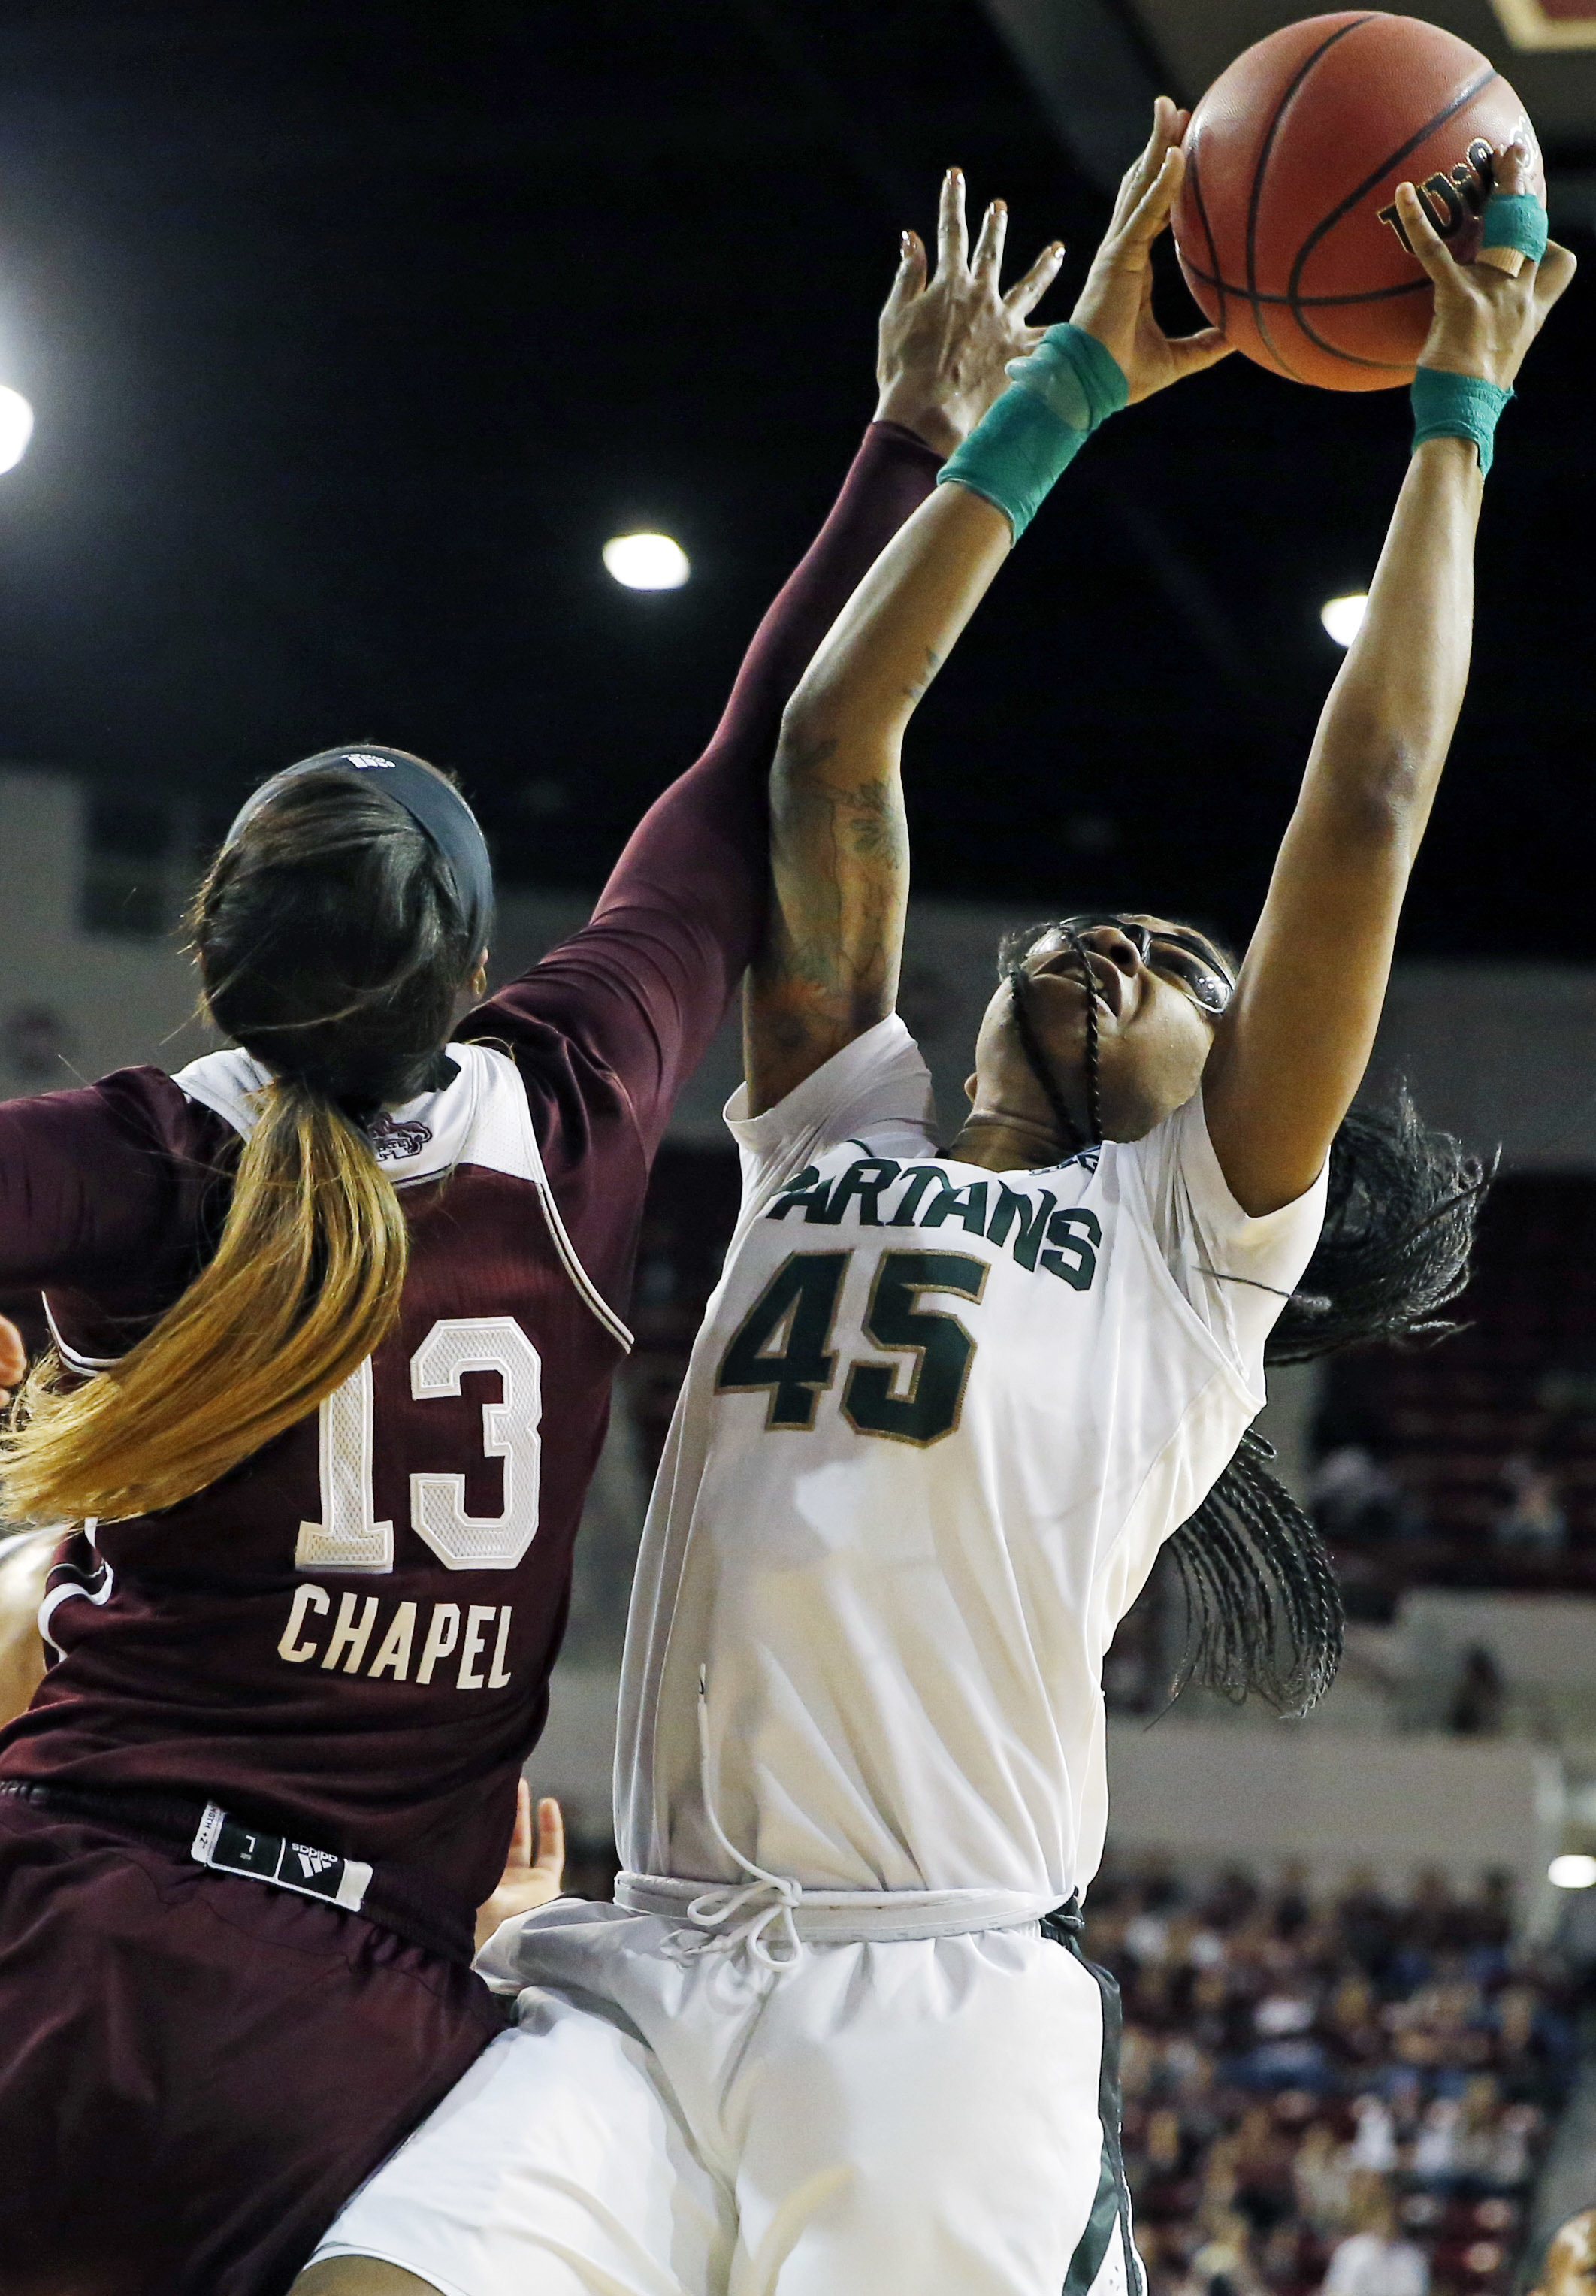 Michigan State forward Akyah Taylor (45) pulls down a rebound past Mississippi State forward Ketara Chapel (13) during the first half in a second-round women's college basketball game in the NCAA Tournament, Sunday, March 20, 2016, in Starkville, Miss. (A